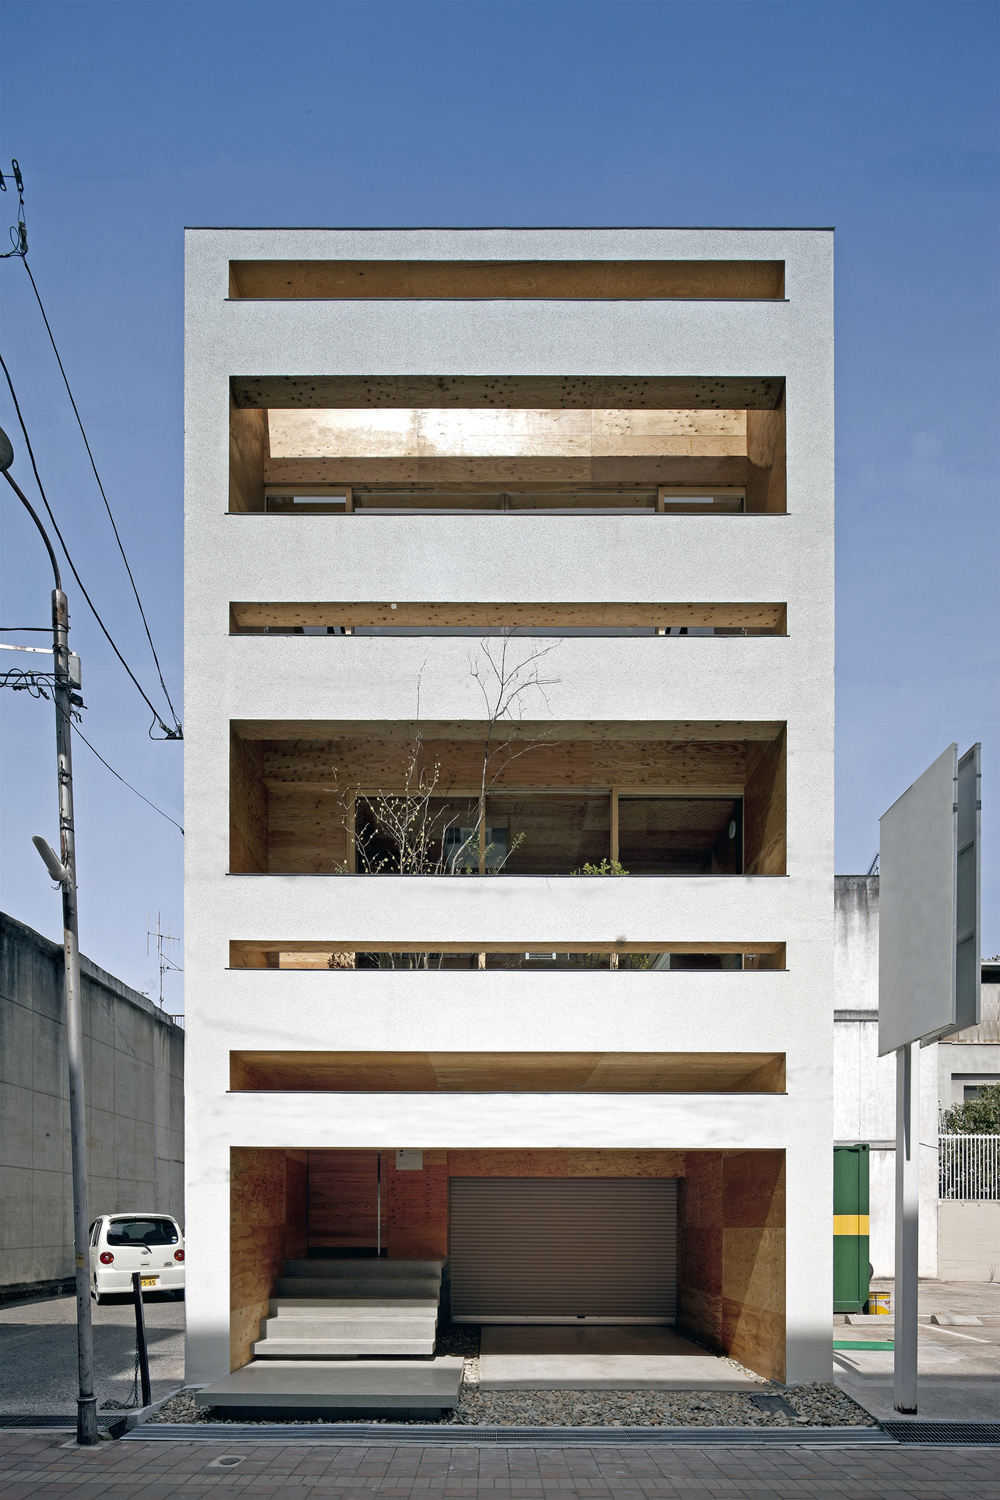 the-tree-mag-machi-building-by-uid-architects-10.jpg